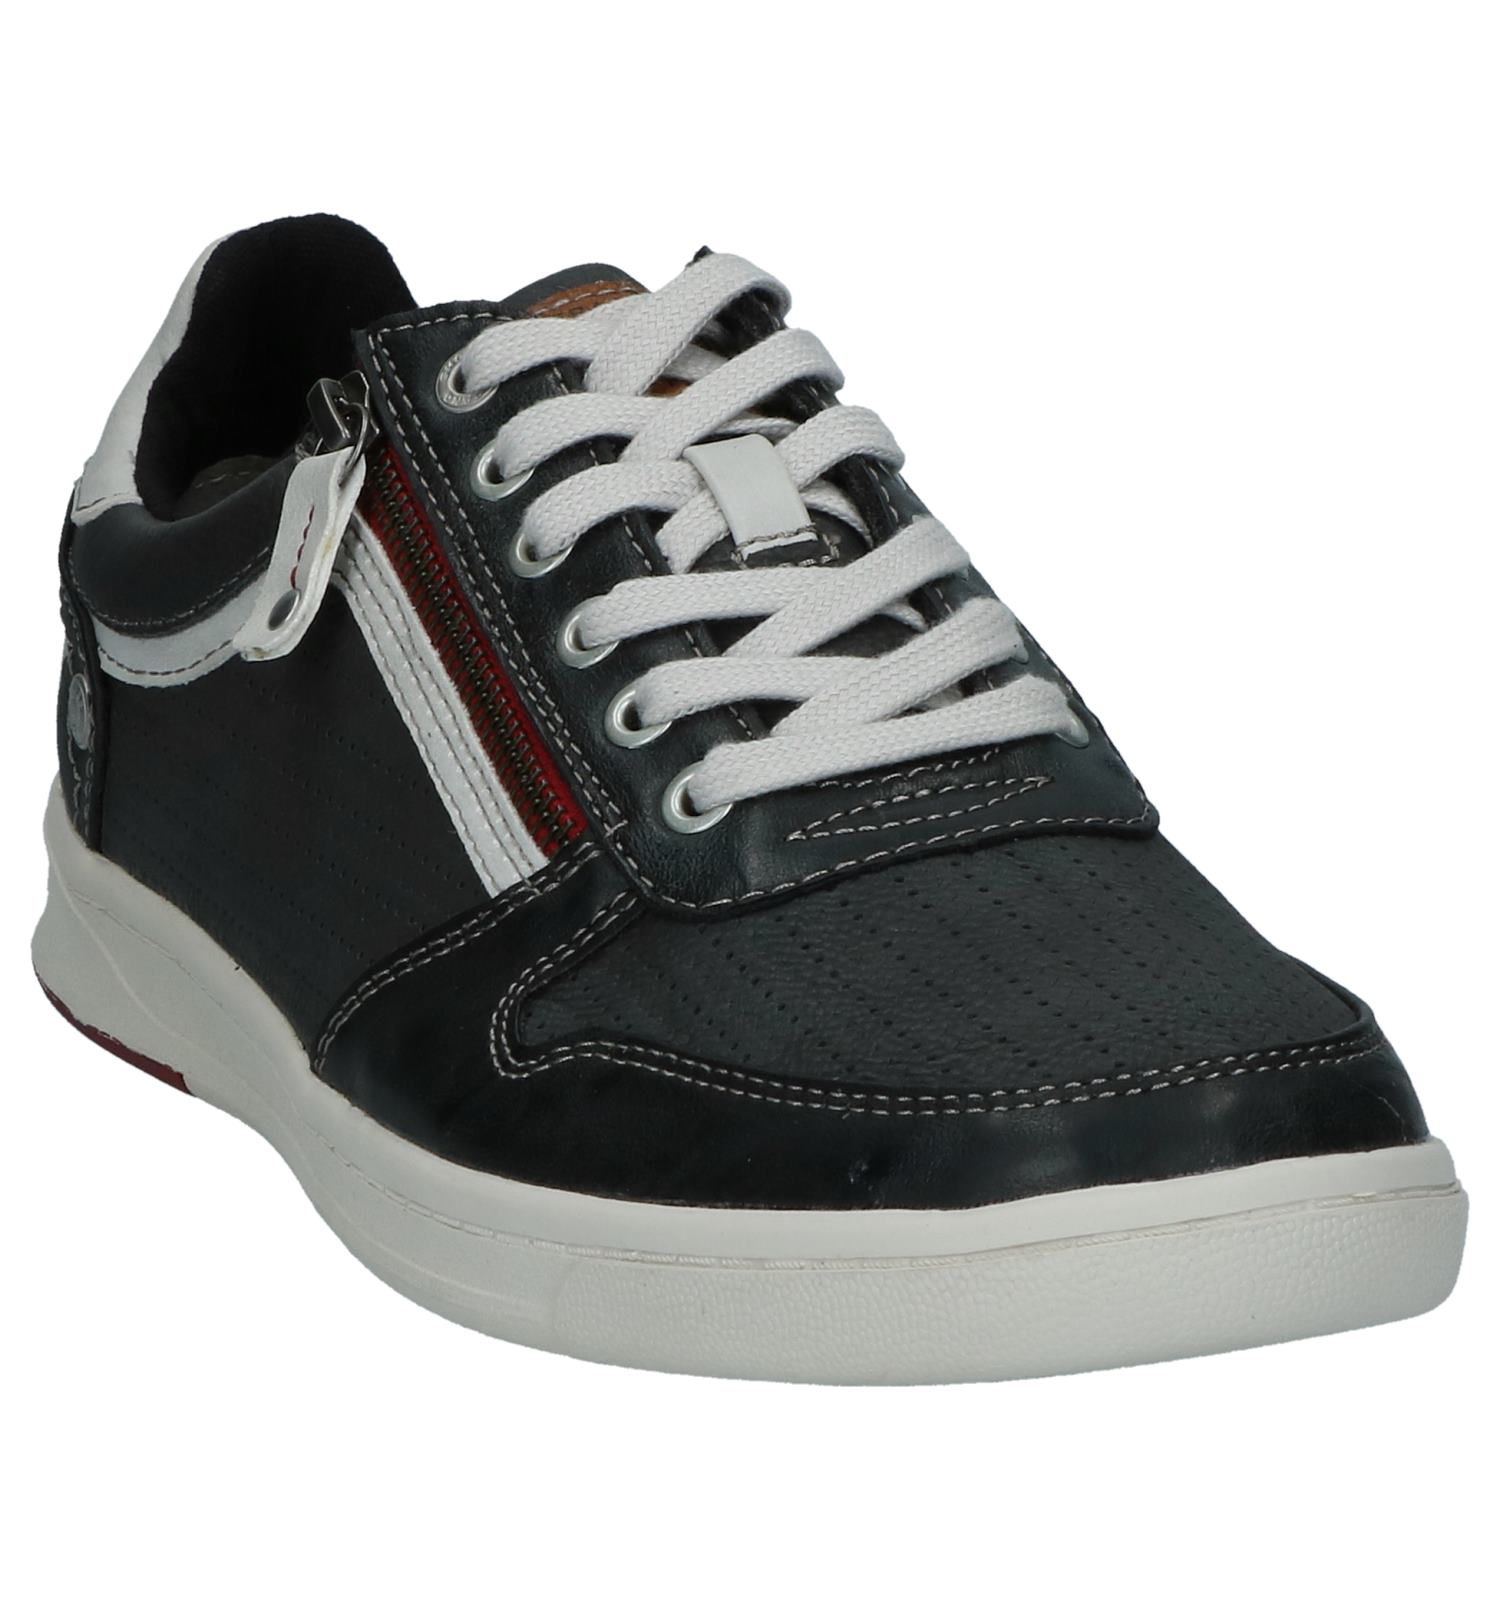 Casual Casual Mustang Mustang Casual Veterschoenen Donkerblauwe Donkerblauwe Casual Mustang Mustang Veterschoenen Veterschoenen Donkerblauwe Donkerblauwe nvwm0ON8